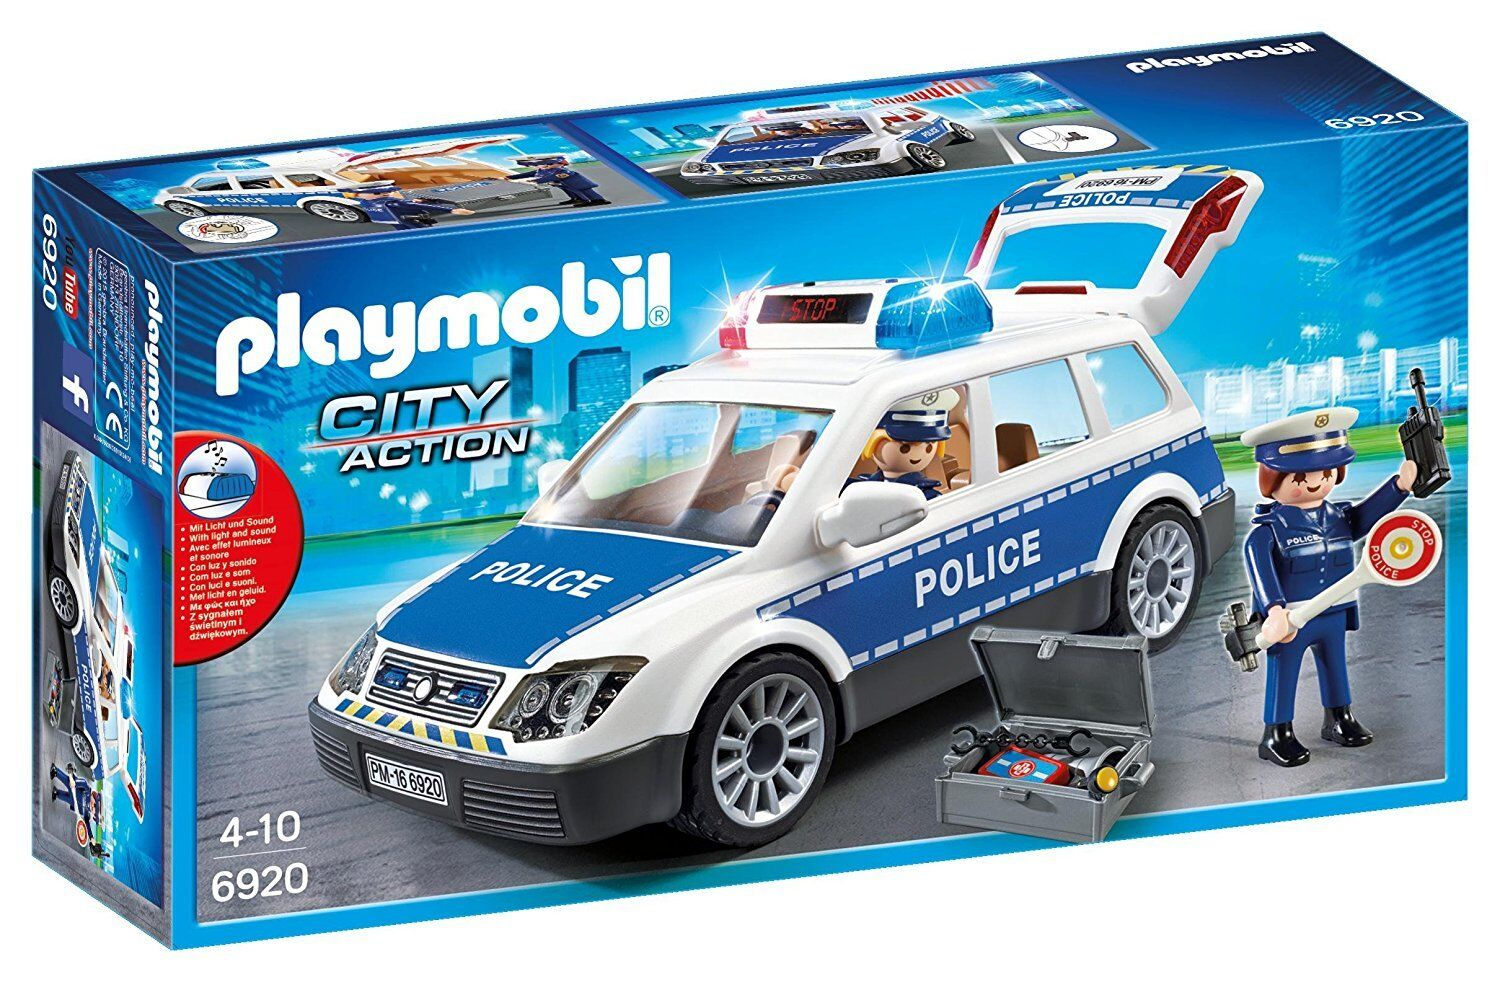 Playmobil City Action 6920 Police Car with Lights and Sound